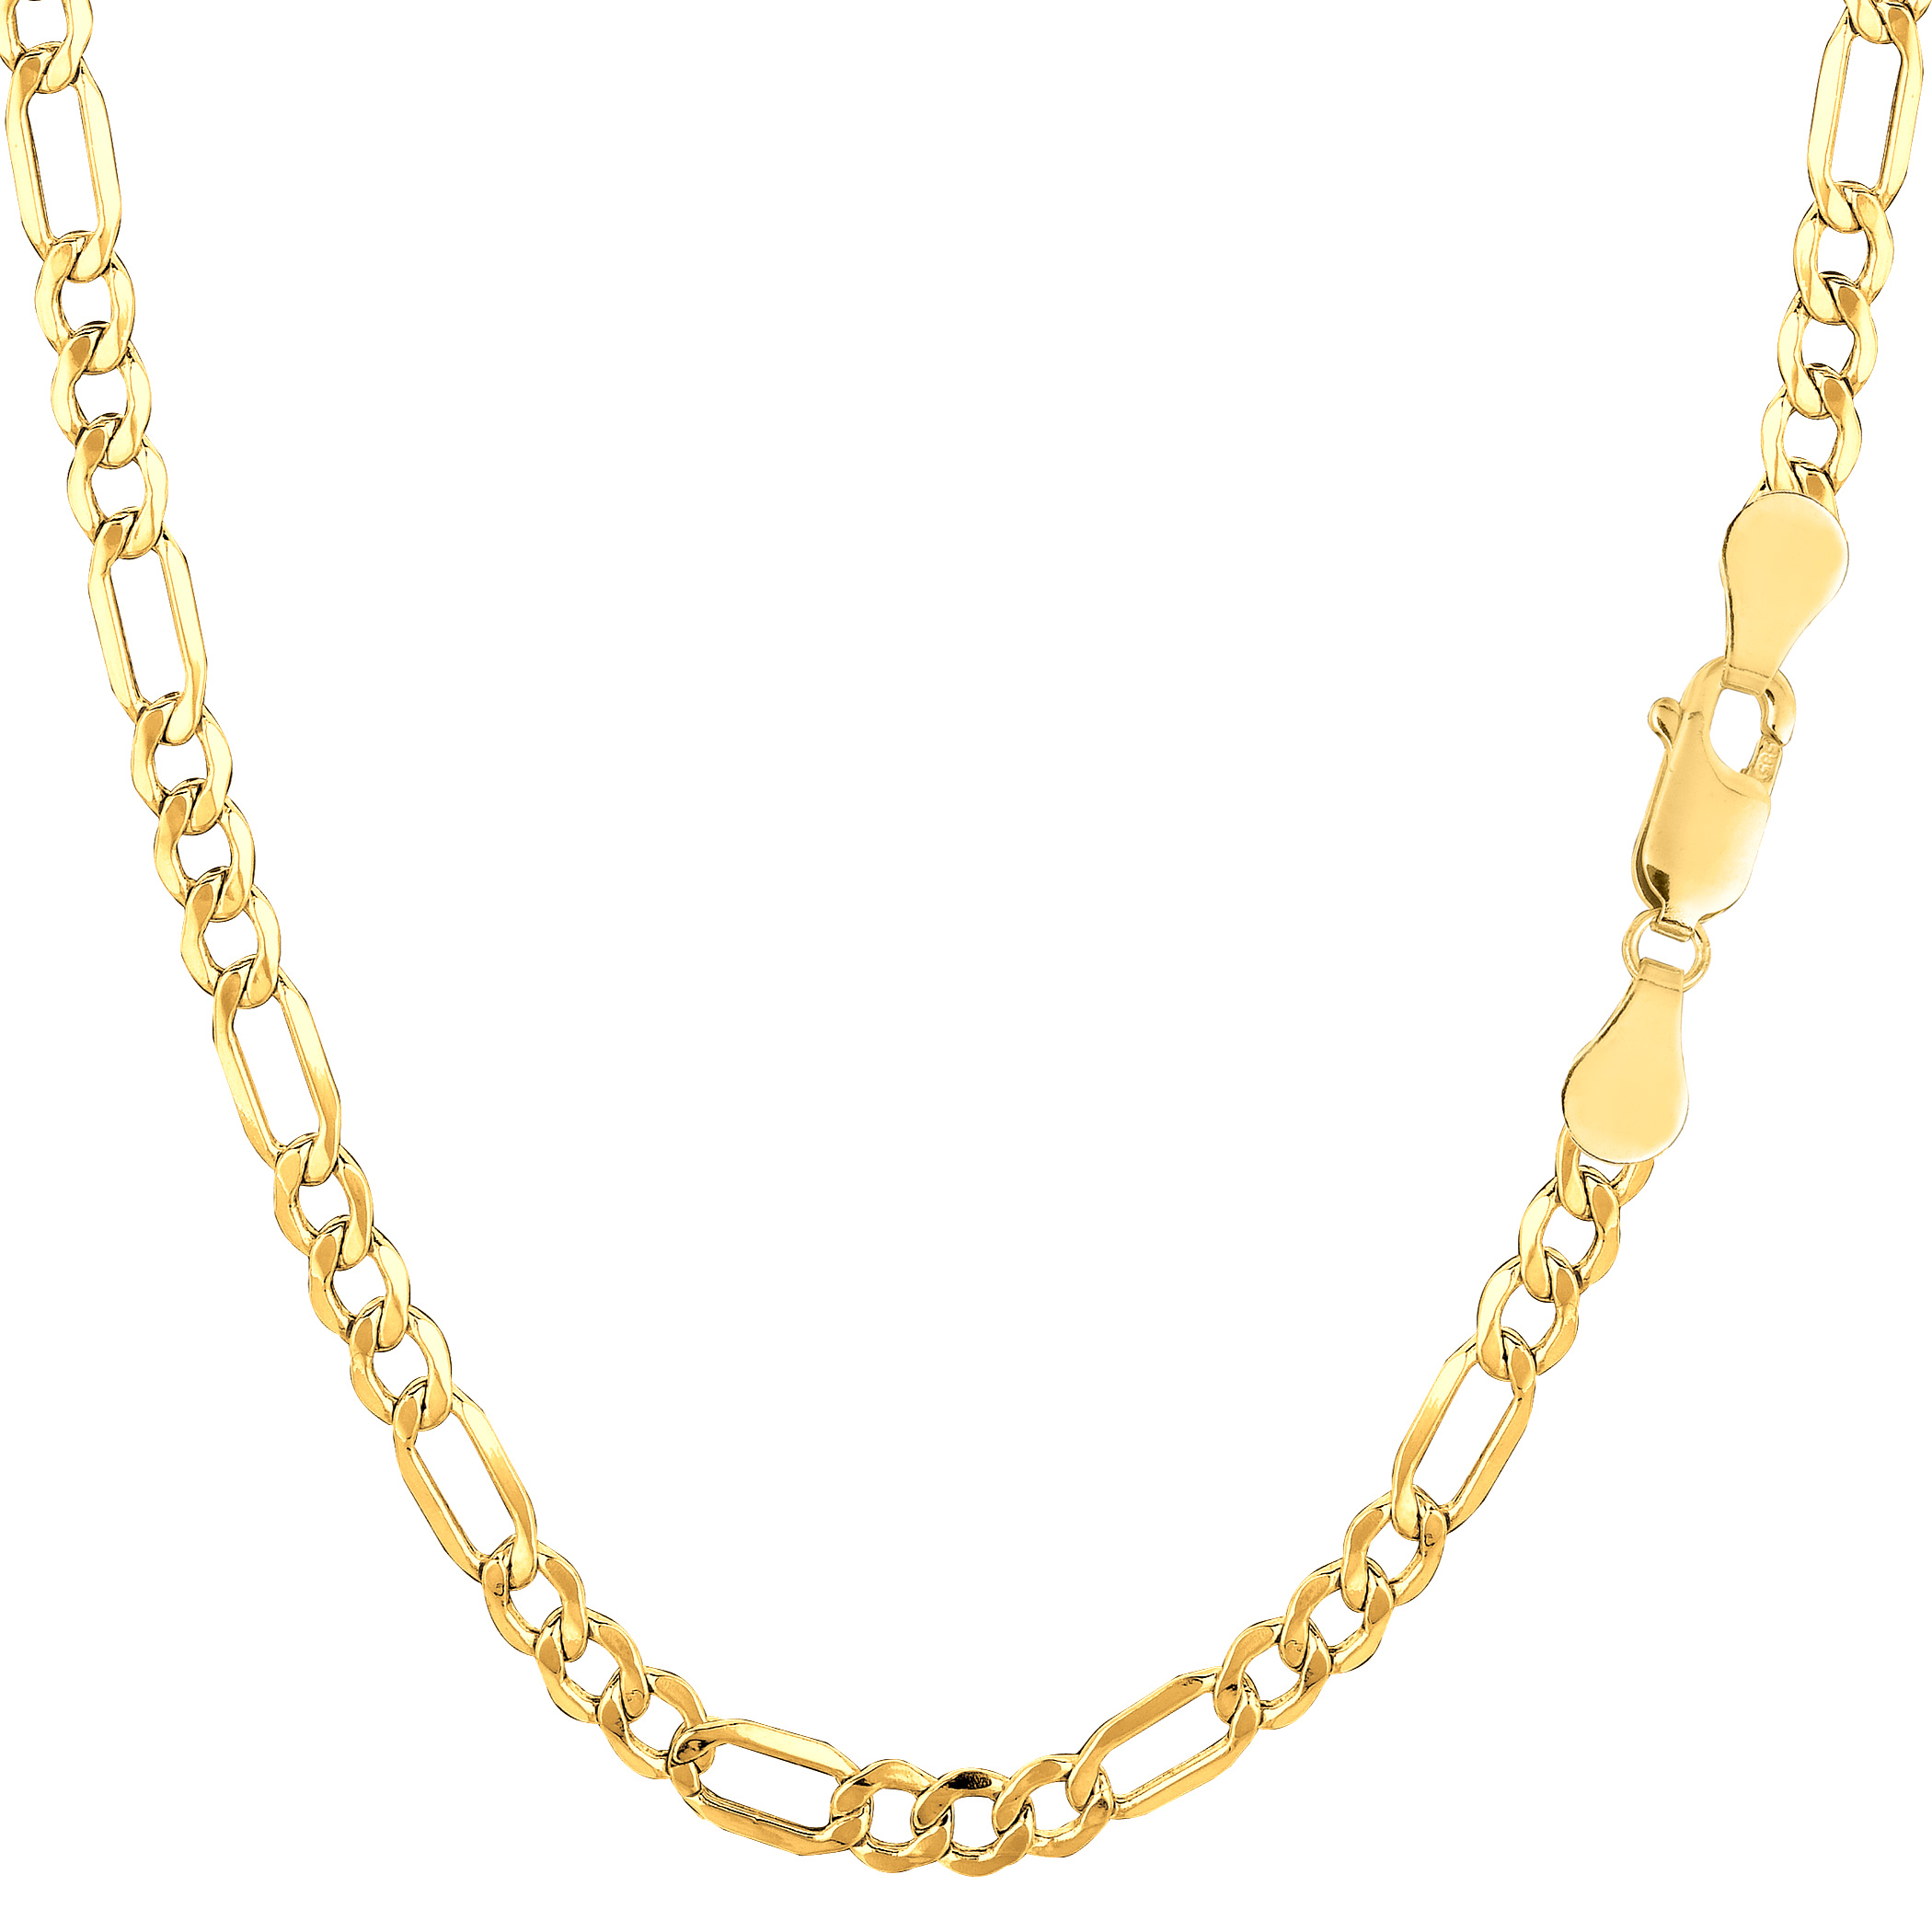 10k Yellow Gold Hollow Figaro Bracelet Chain, 3.5mm, 7.5″